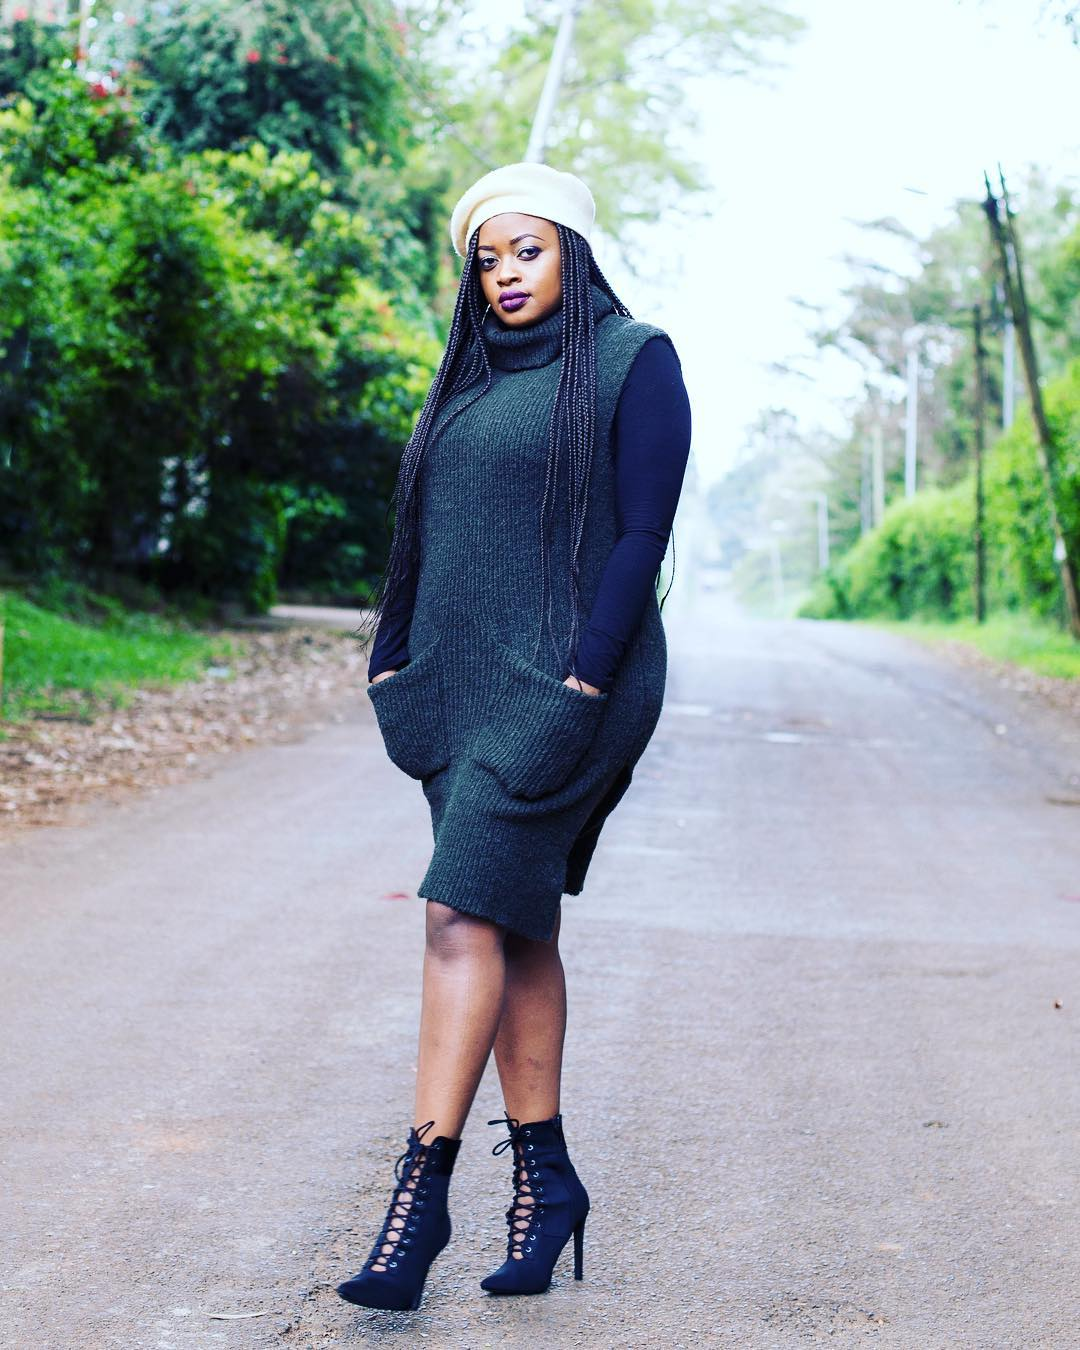 30591232 174205053235976 281505848935579648 n - 'I was angry with God,' Janet Mbugua's sister-in-law talks miscarriages